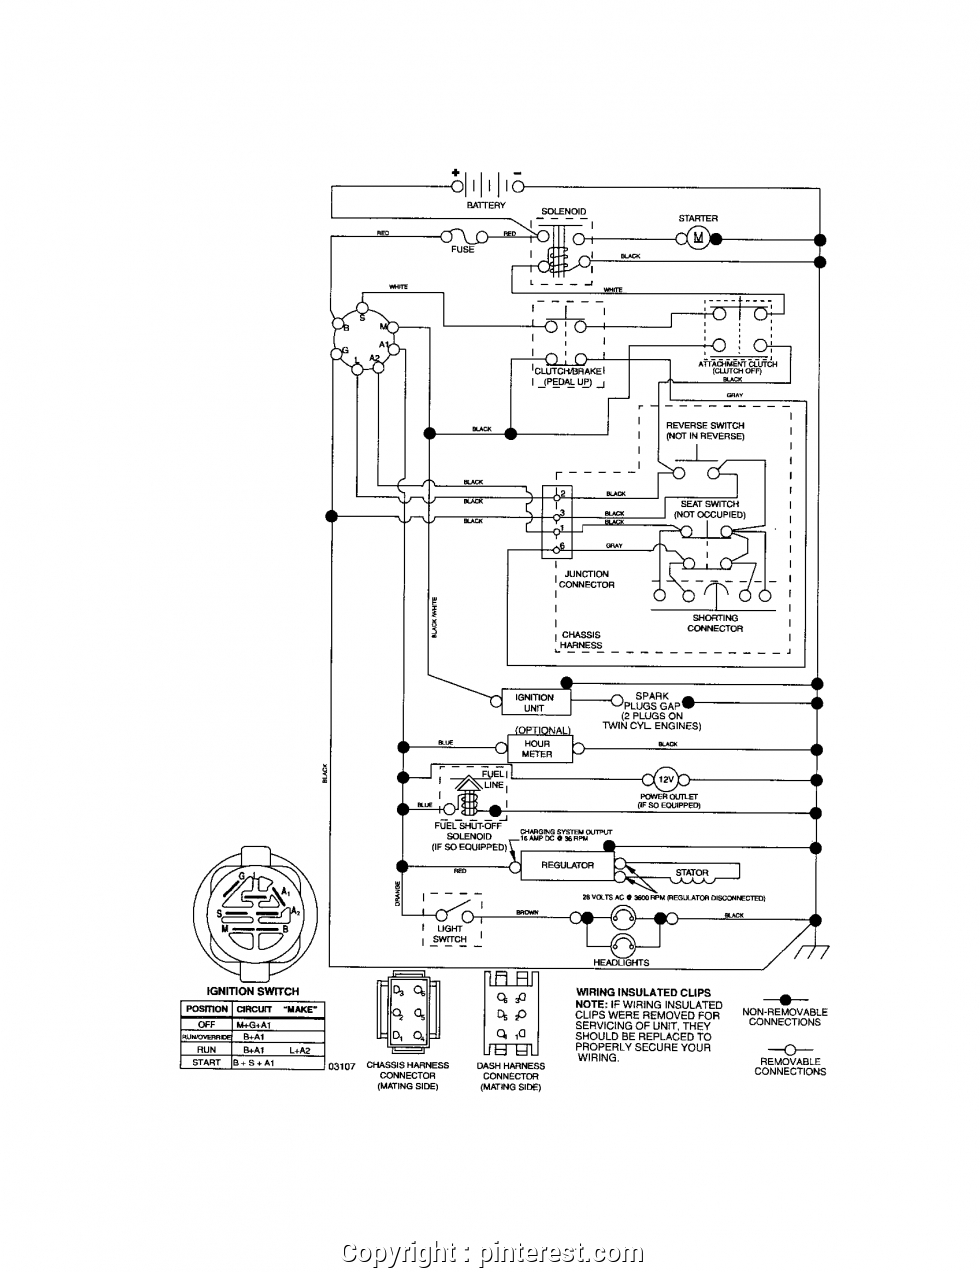 craftsman riding lawn mower lt1000 wiring diagram Collection-Excellent Wiring Diagram Craftsman Lawn Tractor Craftsman Riding Mower Electrical Diagram 7-m